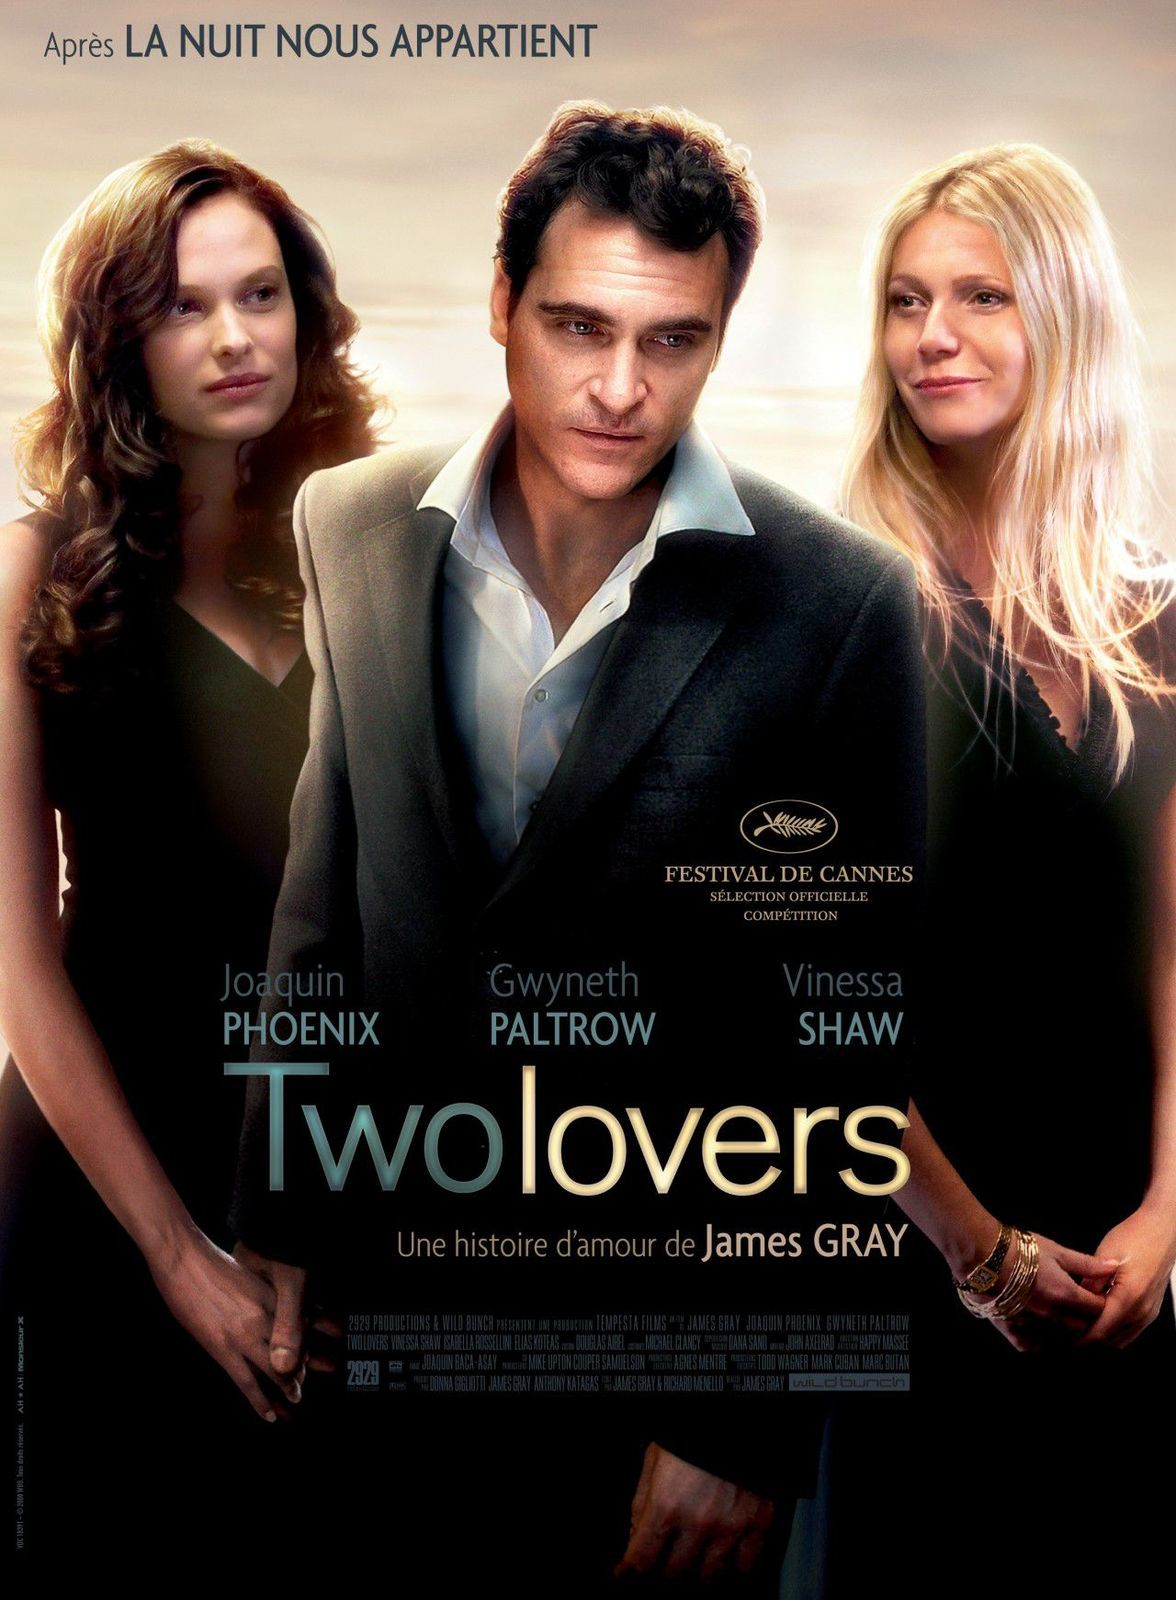 TWO LOVERS - James Gray (2008)